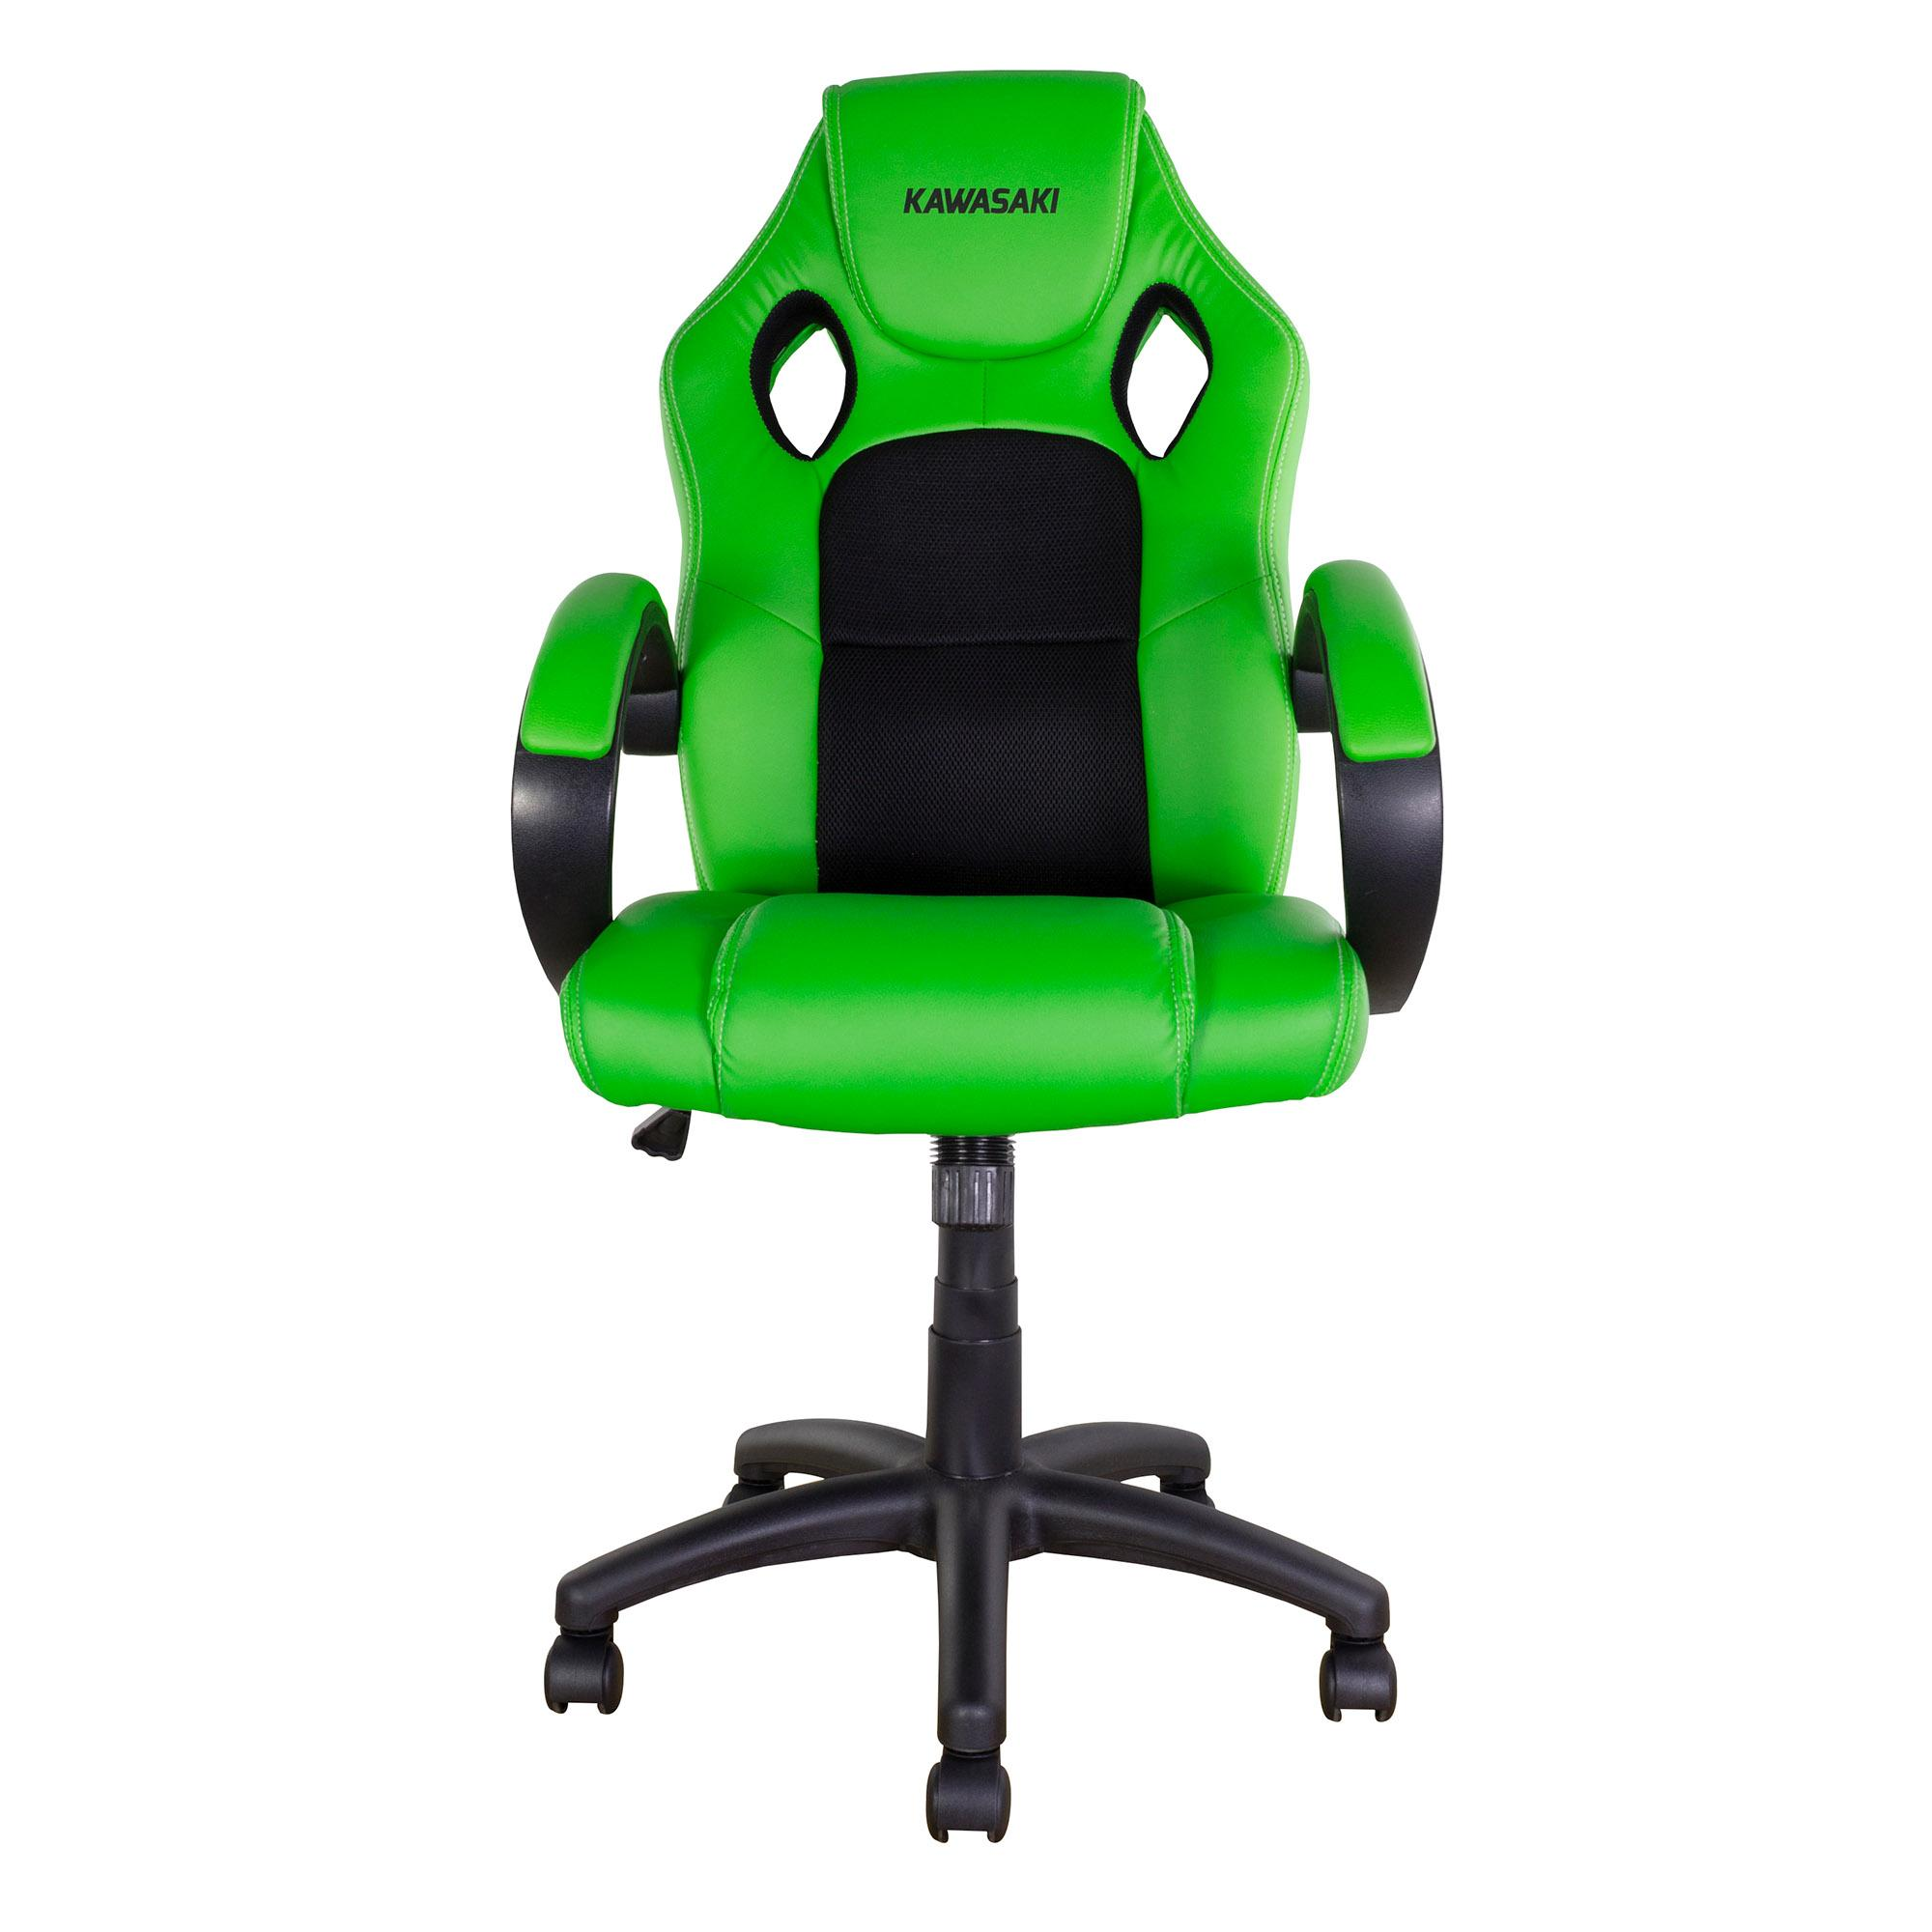 RIDER CHAIR - Kawasaki Green with Black trim